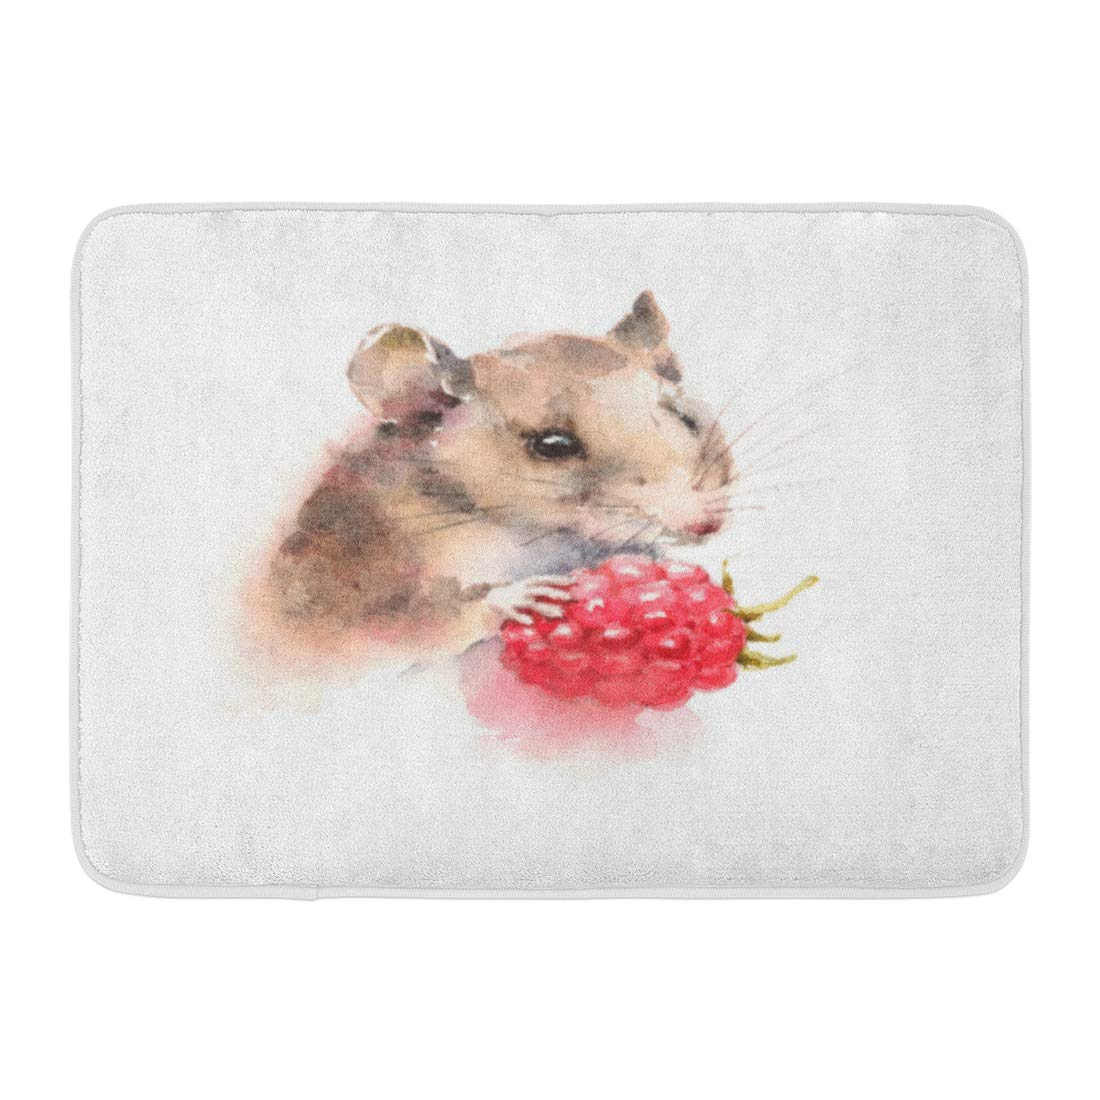 Emvency Bath Mat Forest Red Painting Watercolor Mouse Holding Berry Raspberry Wild Animal Rodent White Drawn Hand Bathroom Decor Rug 16'' x 24''